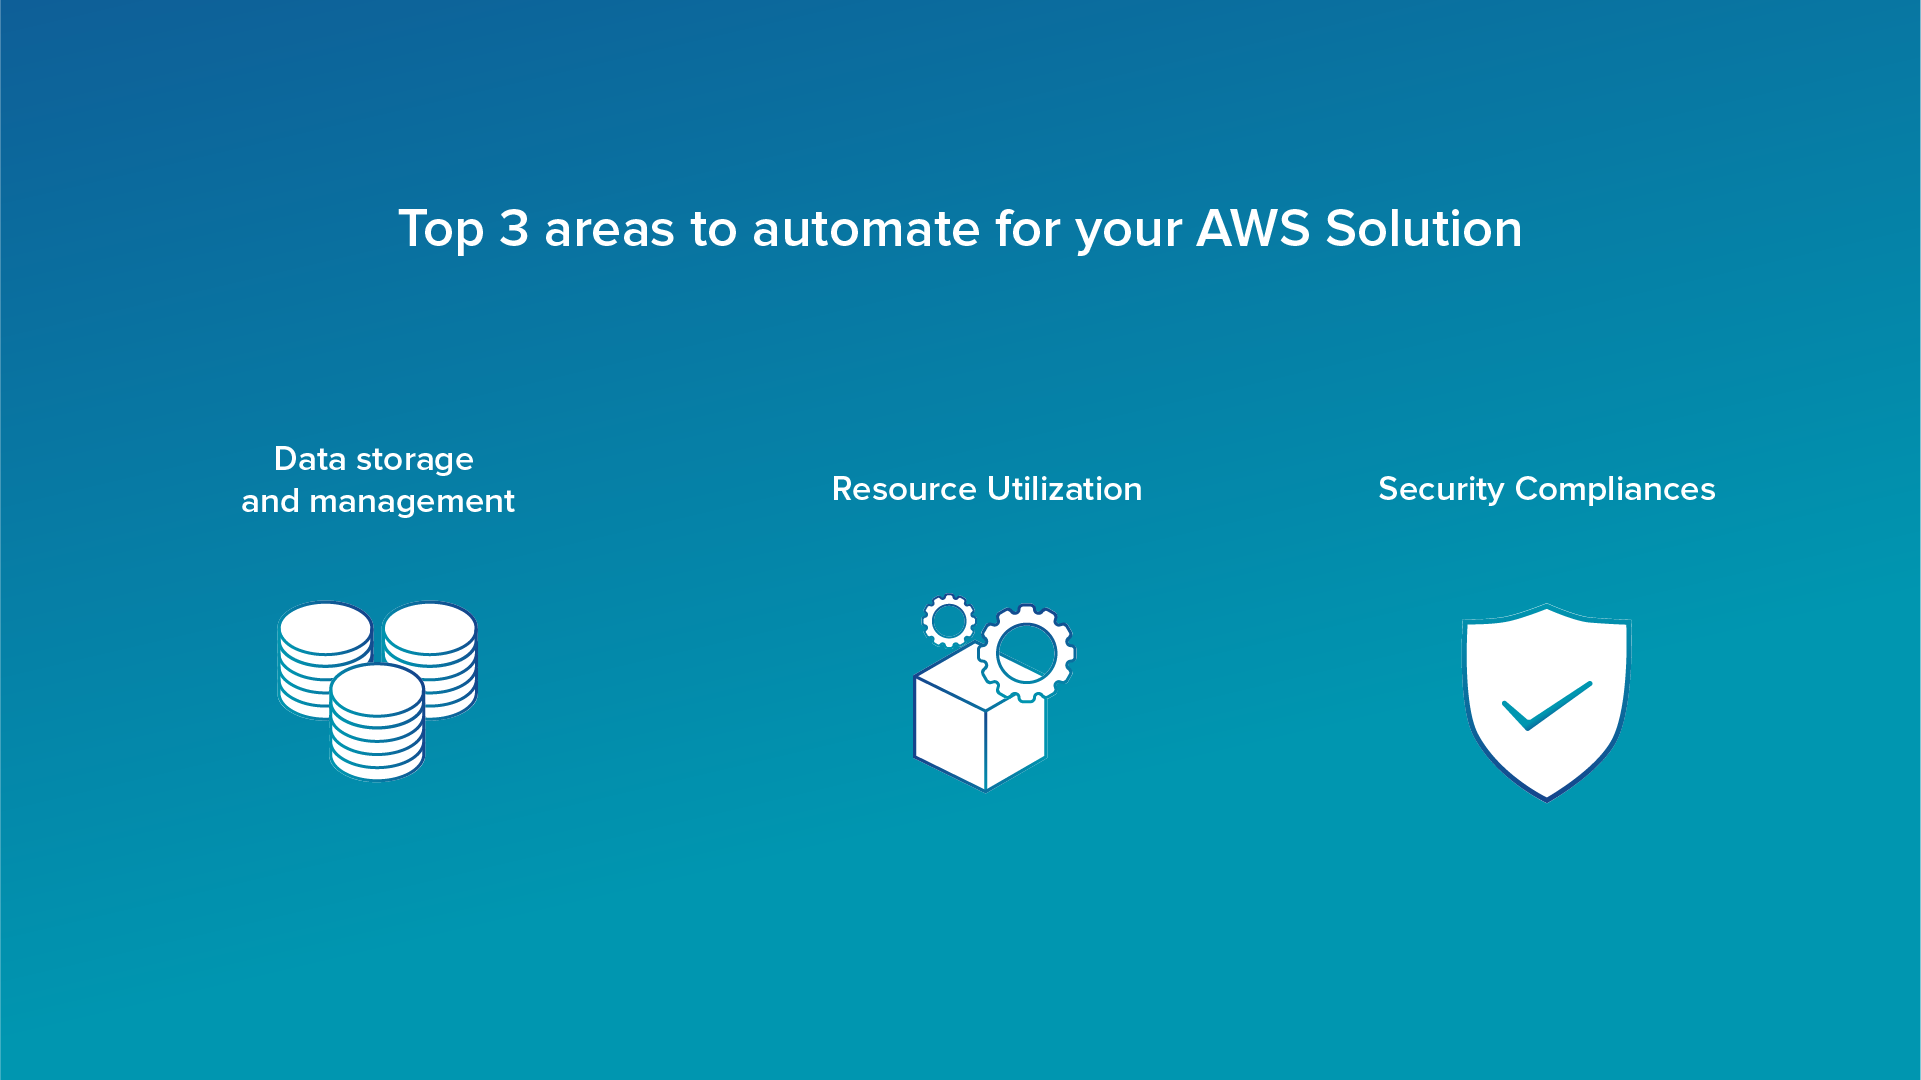 Top 3 Areas in AWS Enterprises Must Automate to Avoid Overpaying Cloud Bills